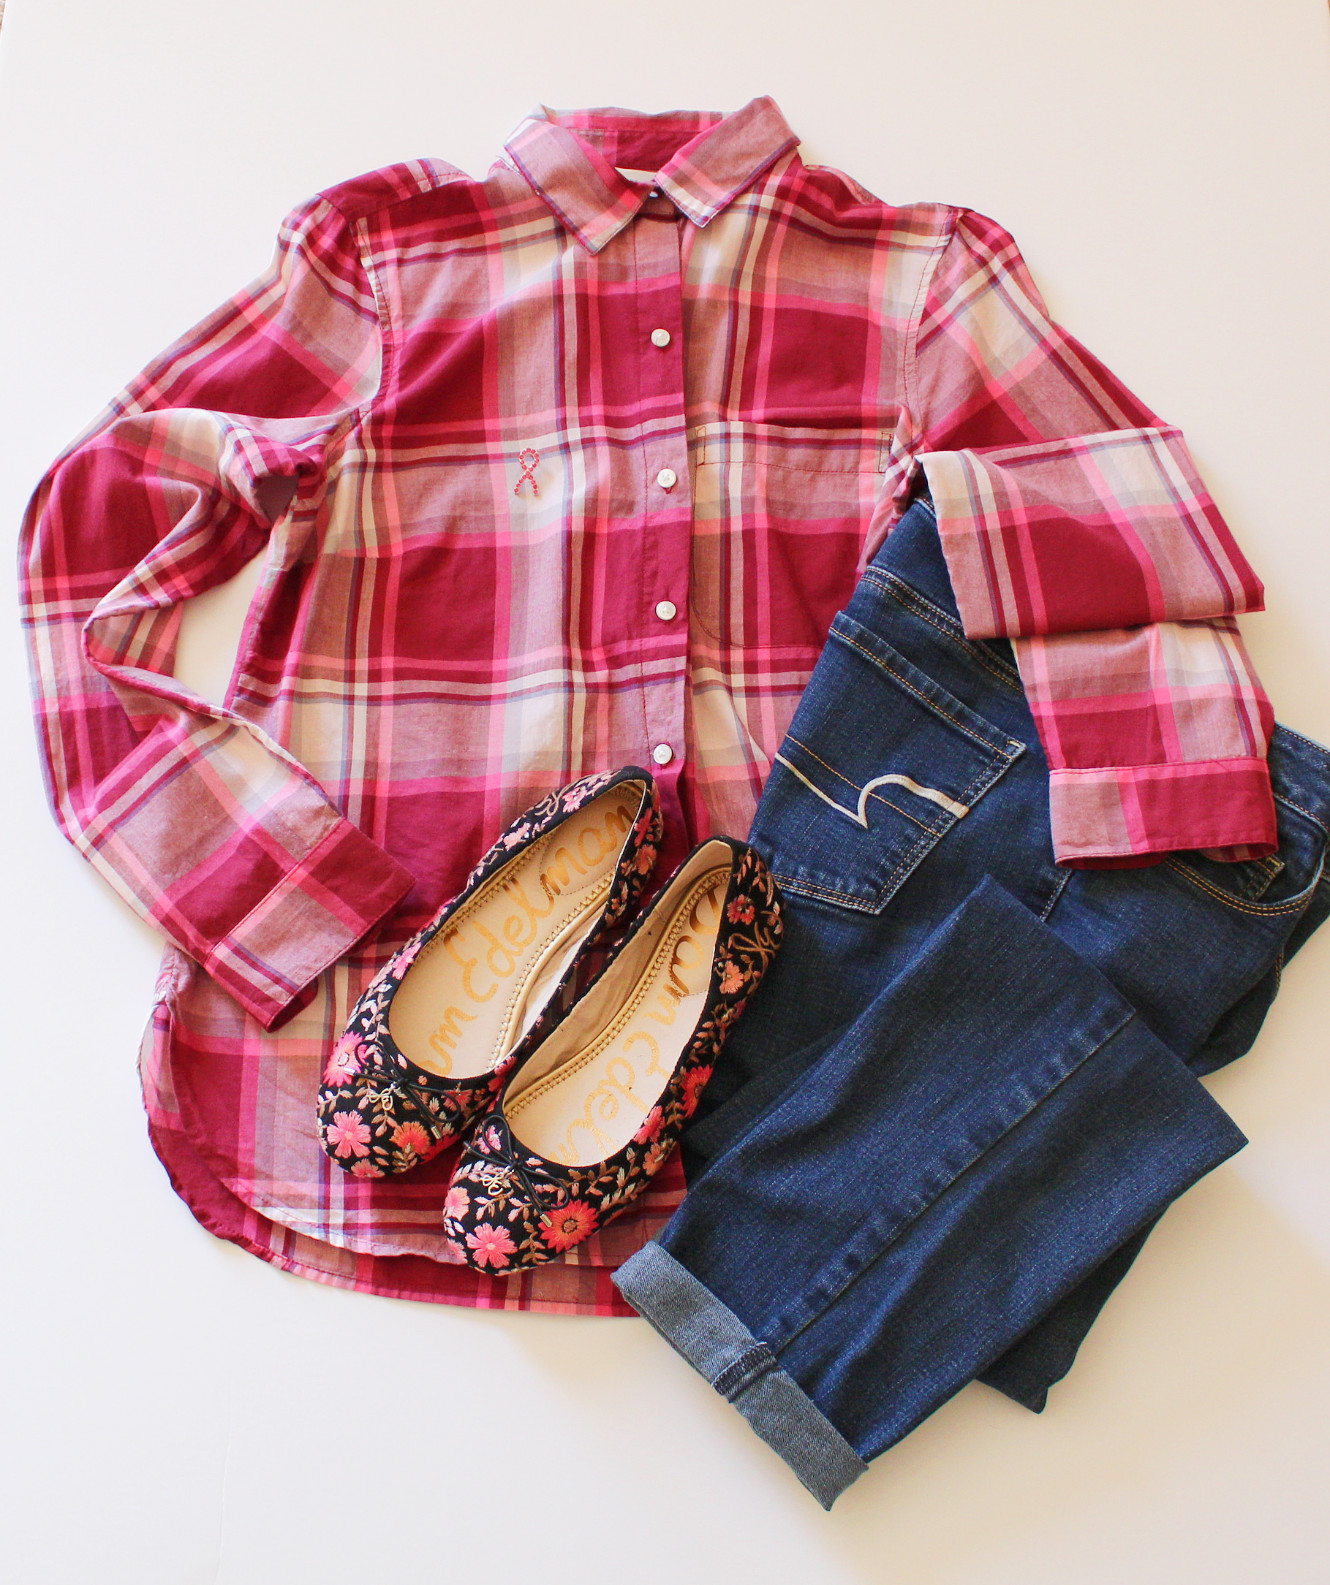 Plaid Shirt With Jeans And Floral Flats